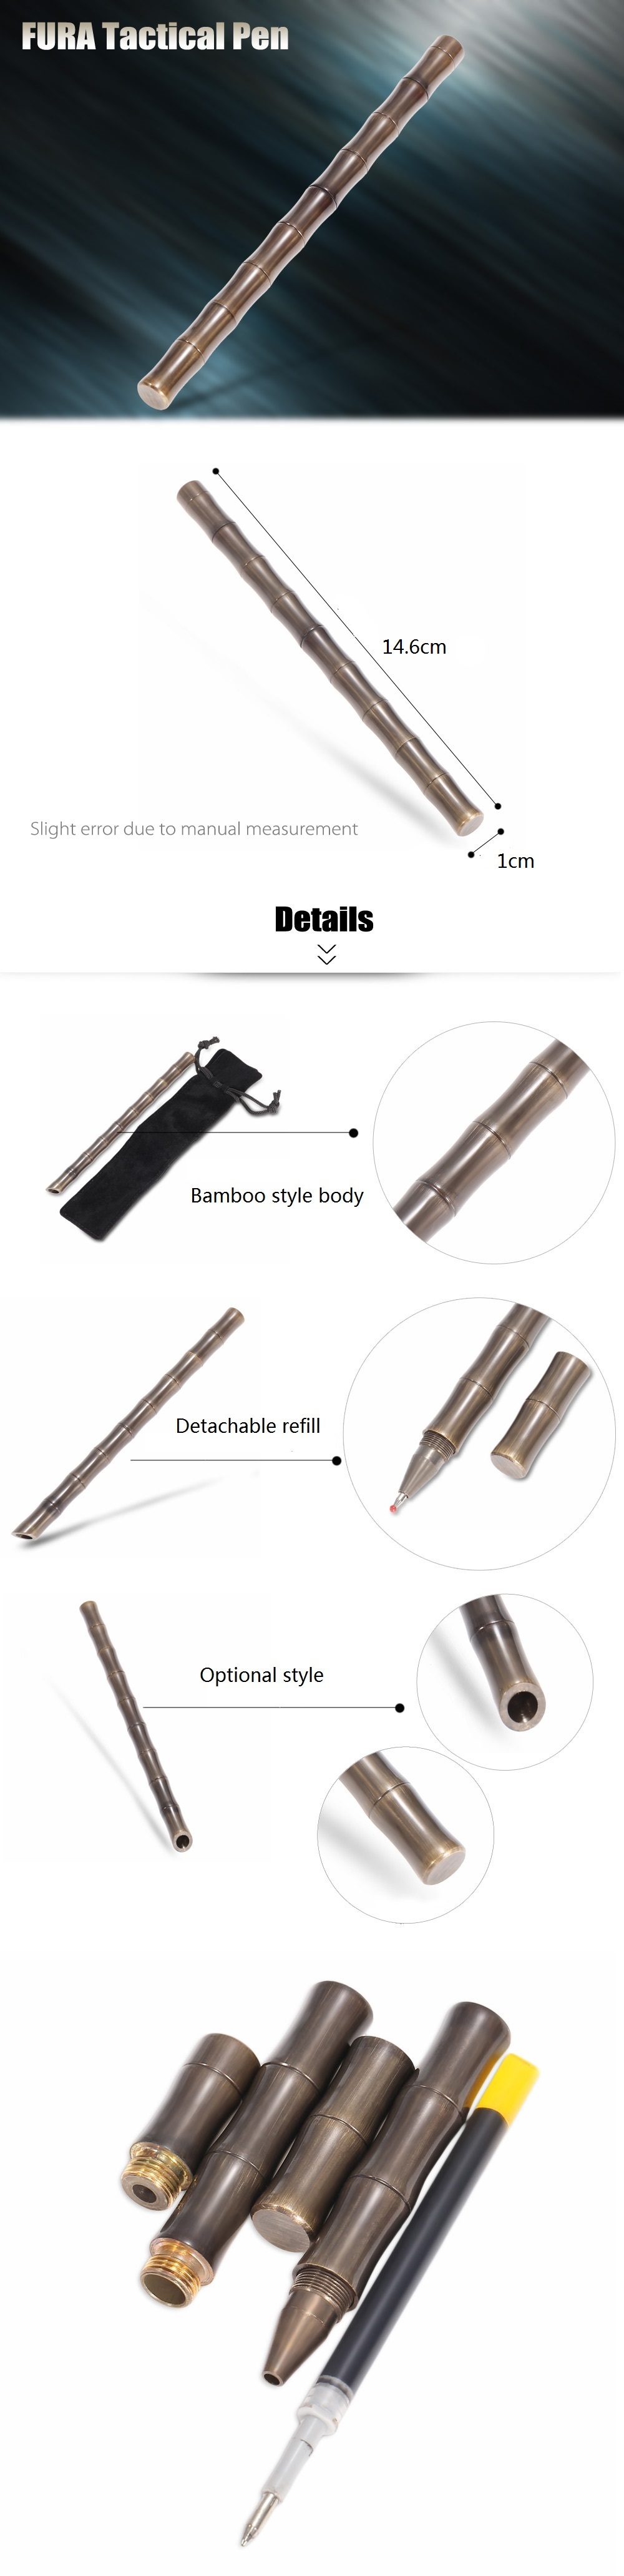 FURA Bamboo Style Body Brass Tactical Pen with Ring